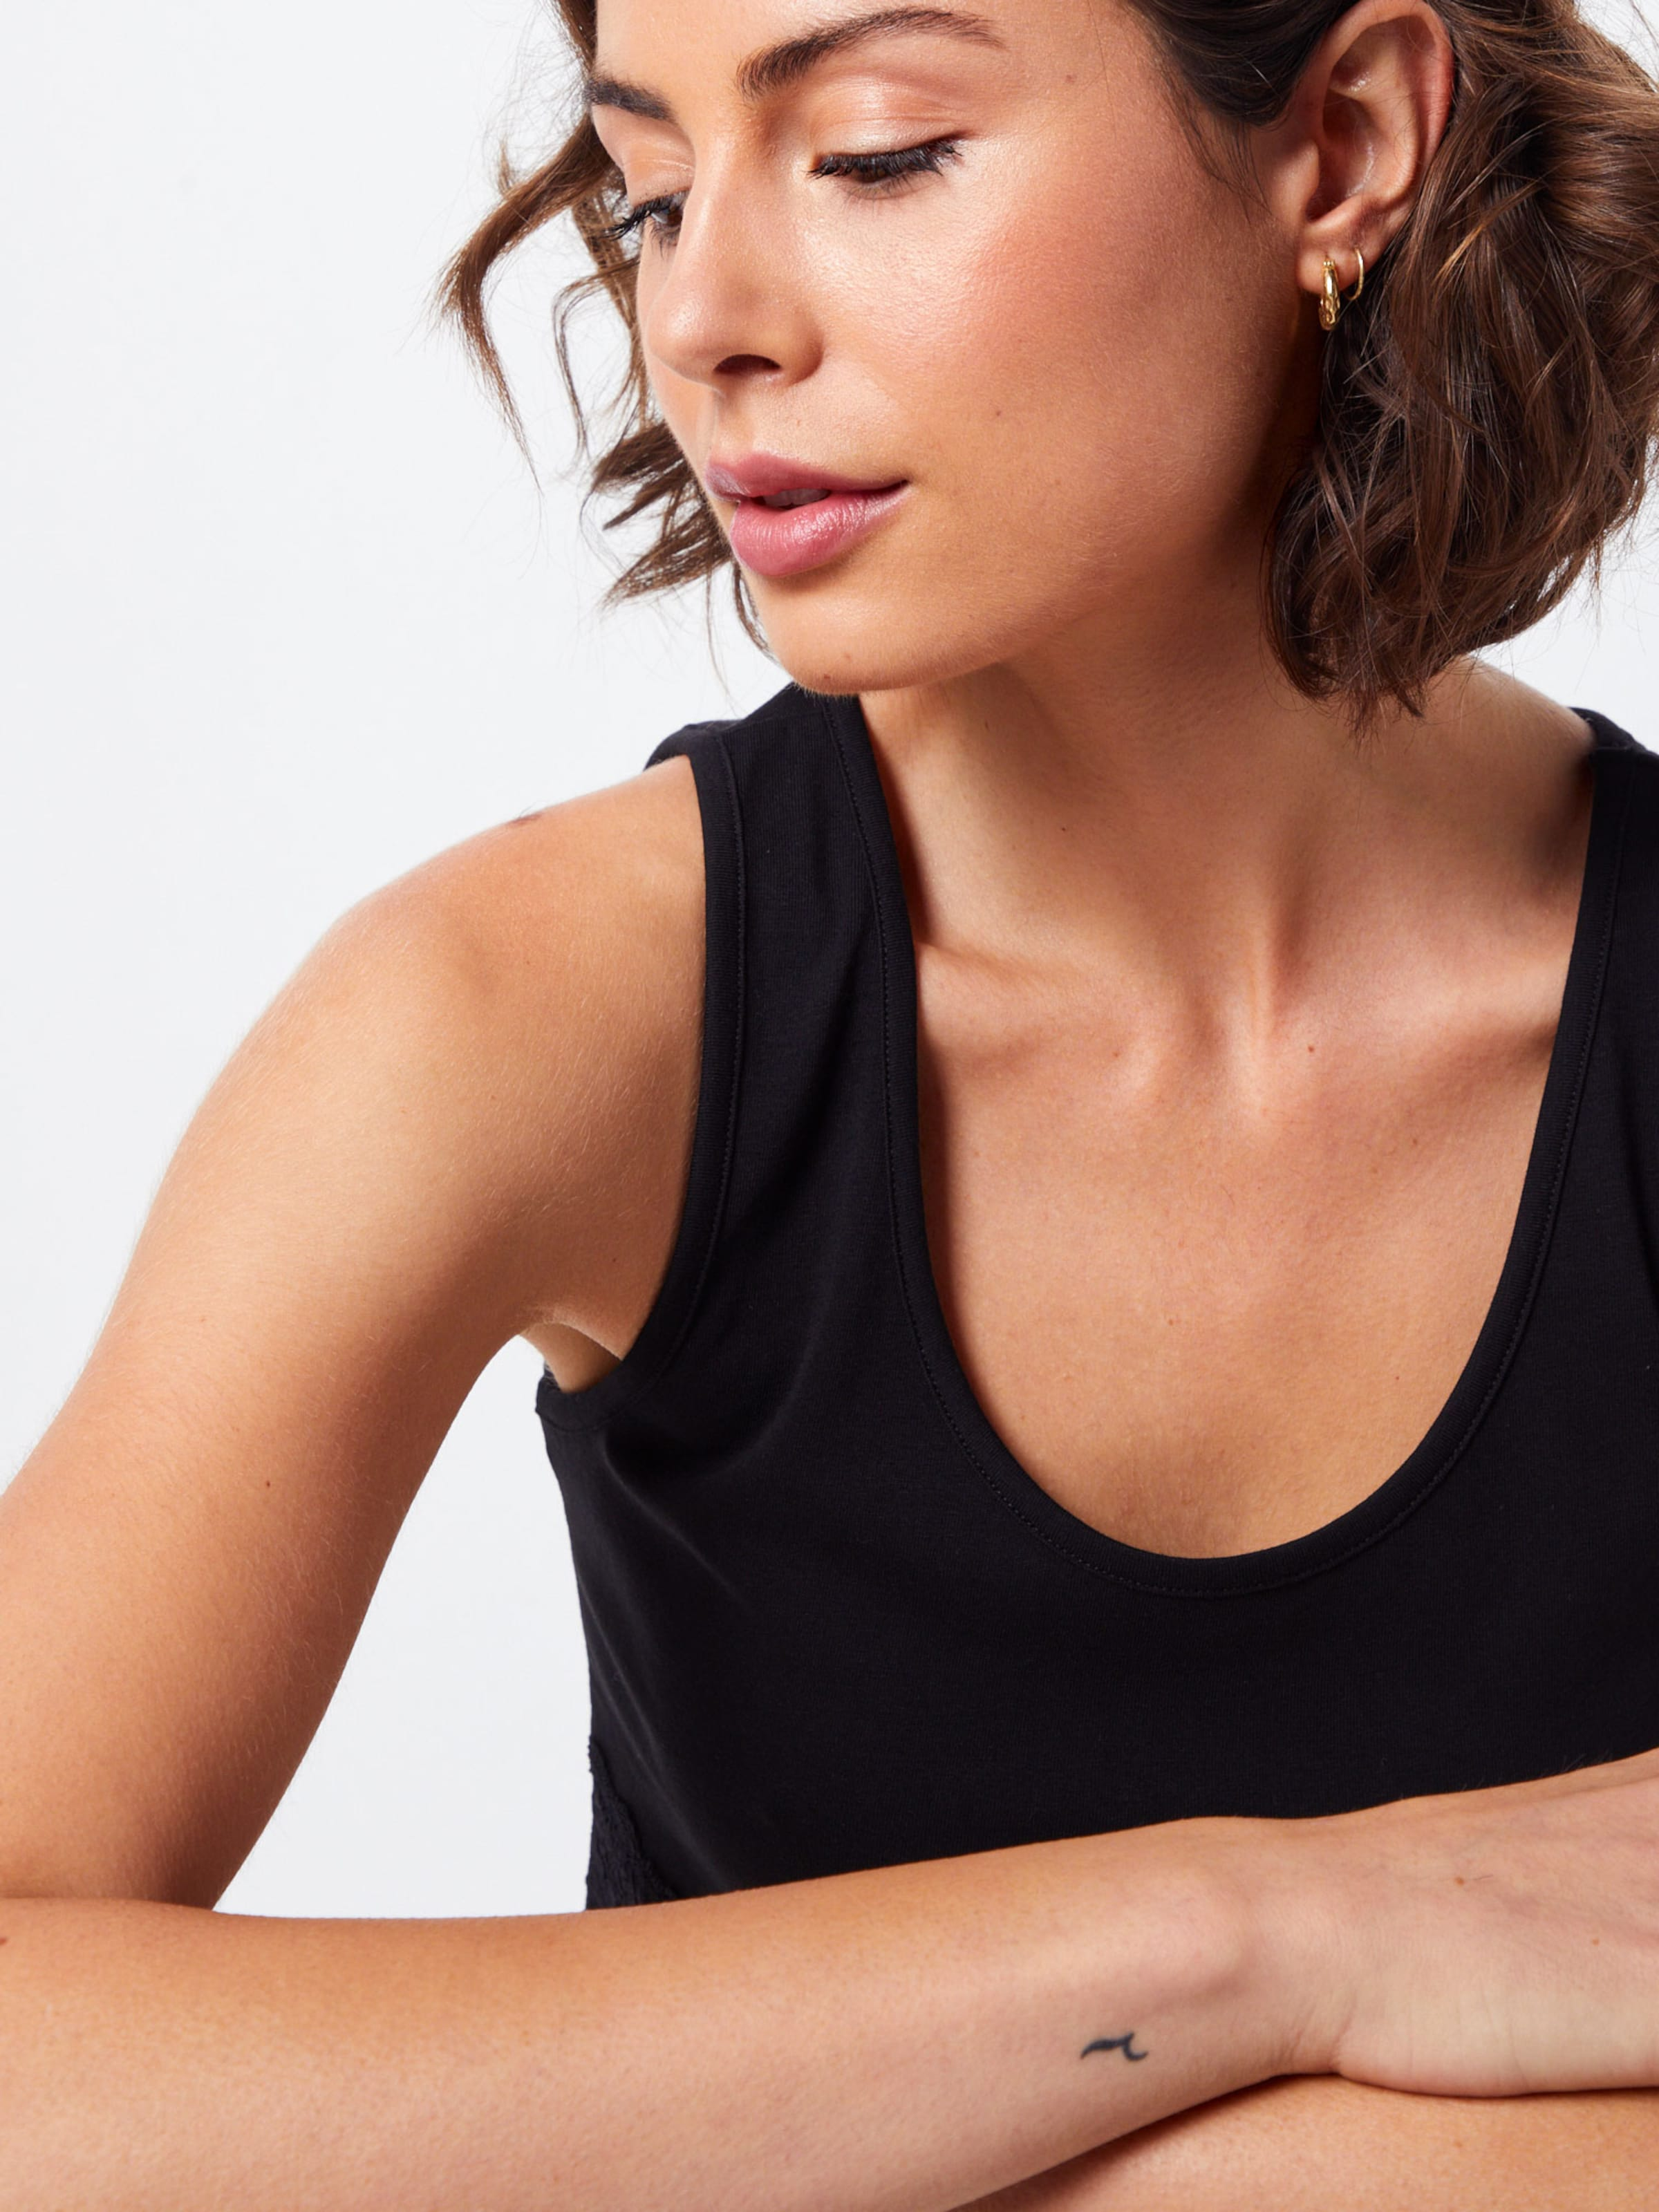 You 'lotte' Top In About Schwarz dBoQrCxWeE